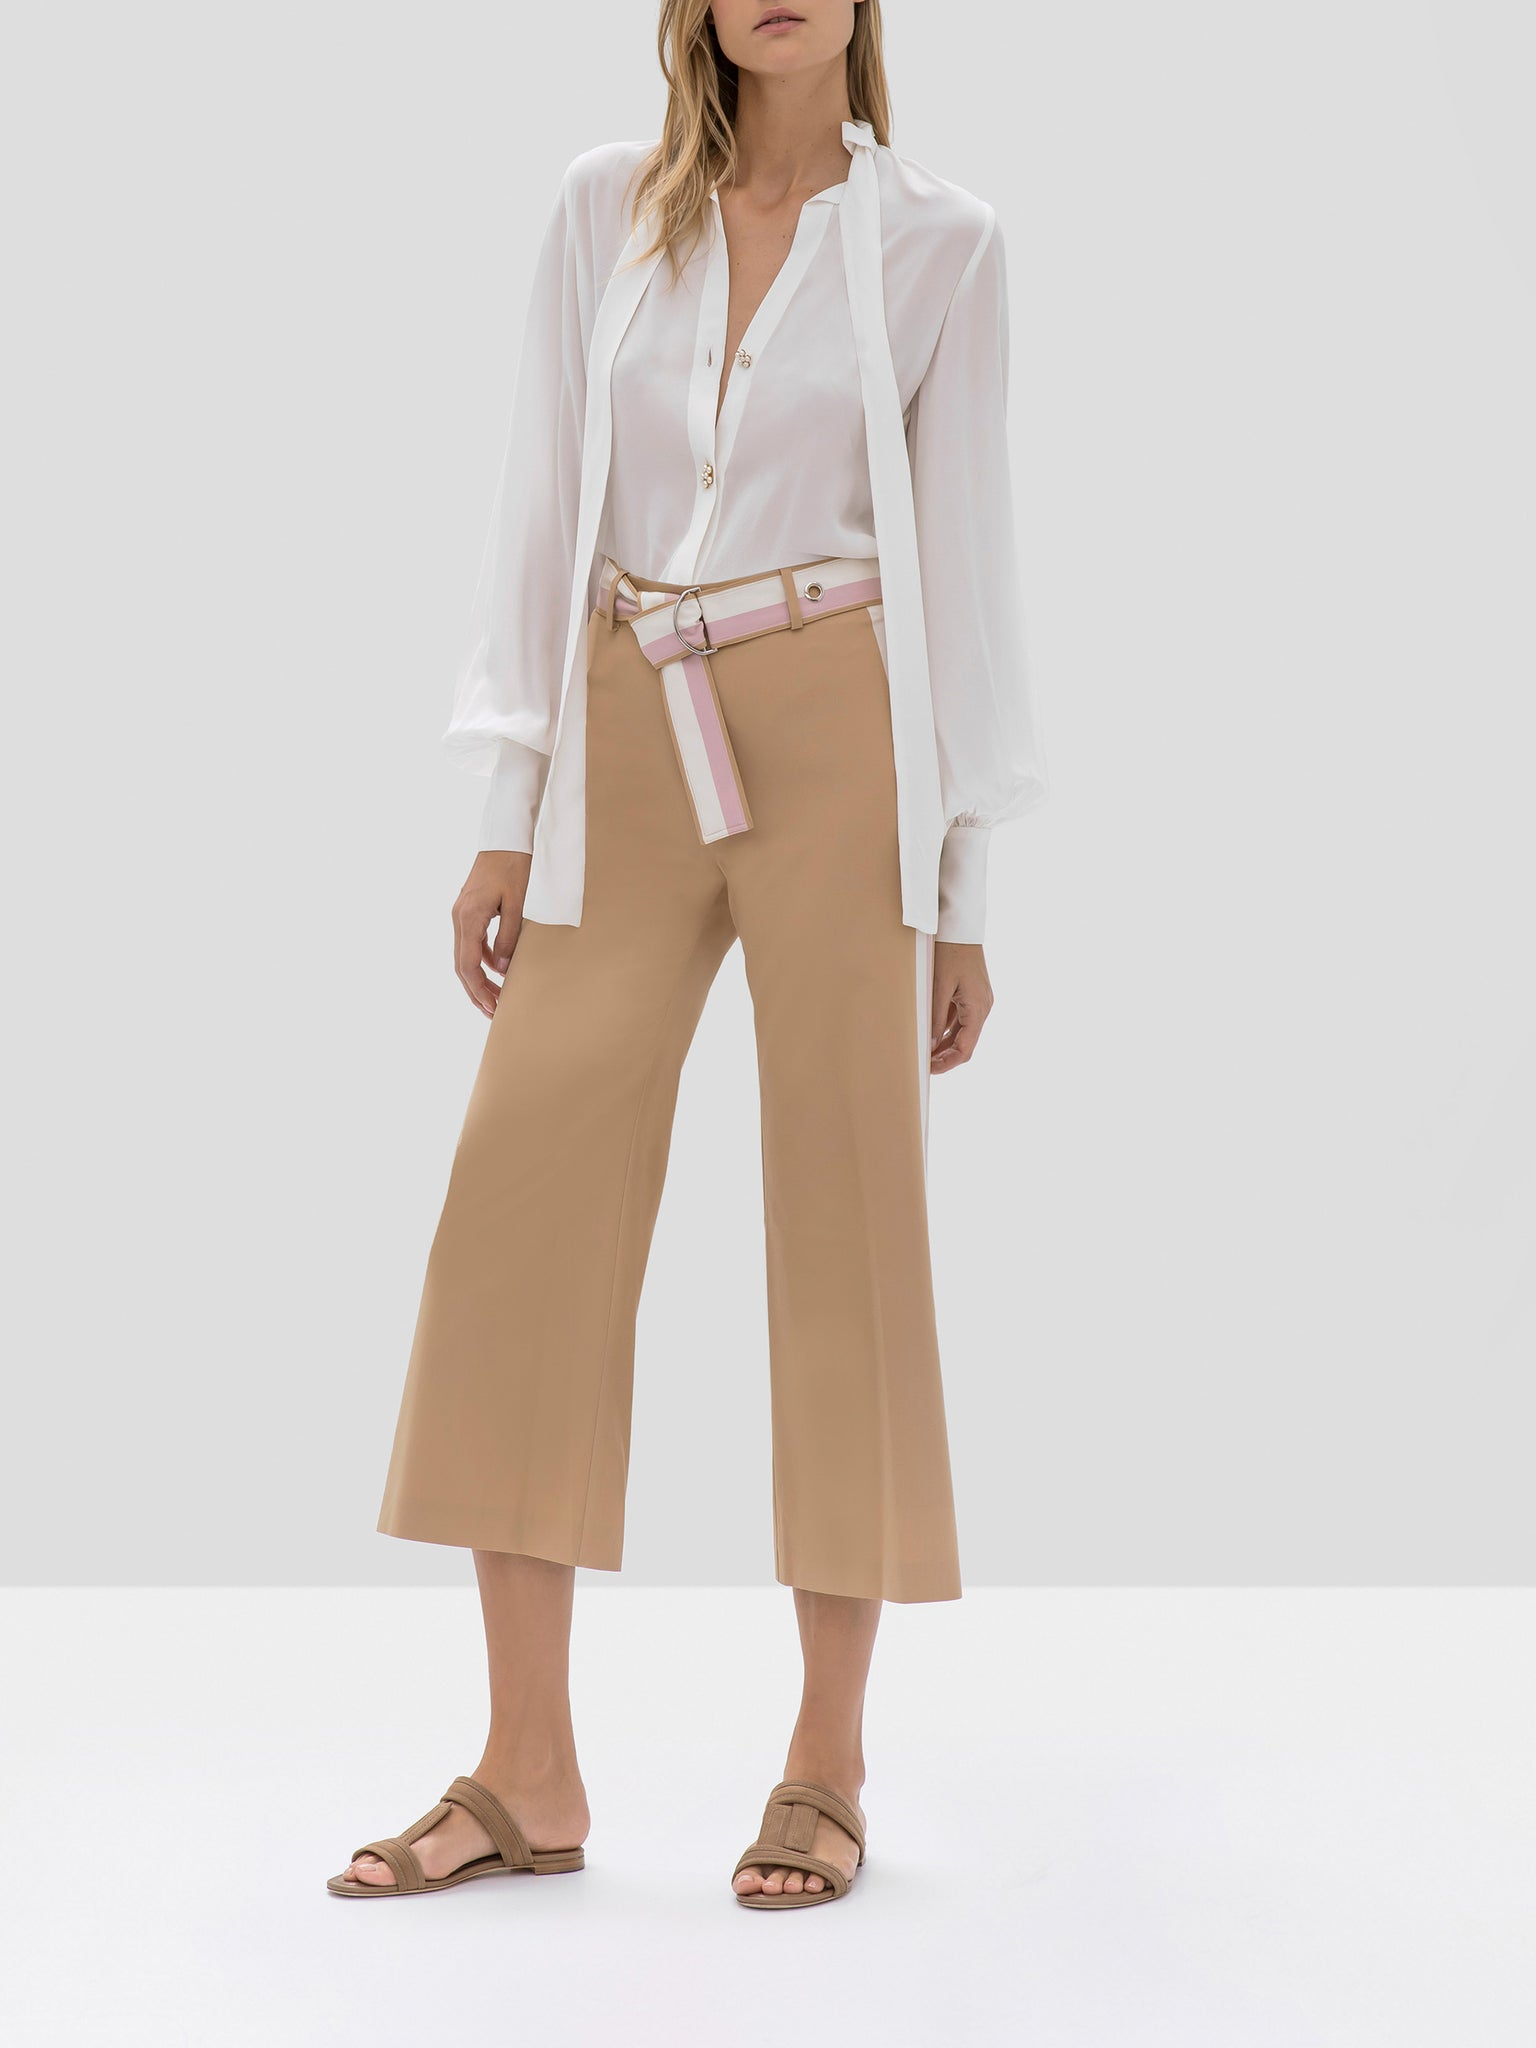 Alexis Aruca Top in White and Lennox Pant in Tan Striped from the Pre Fall 2019 Ready To Wear Collection